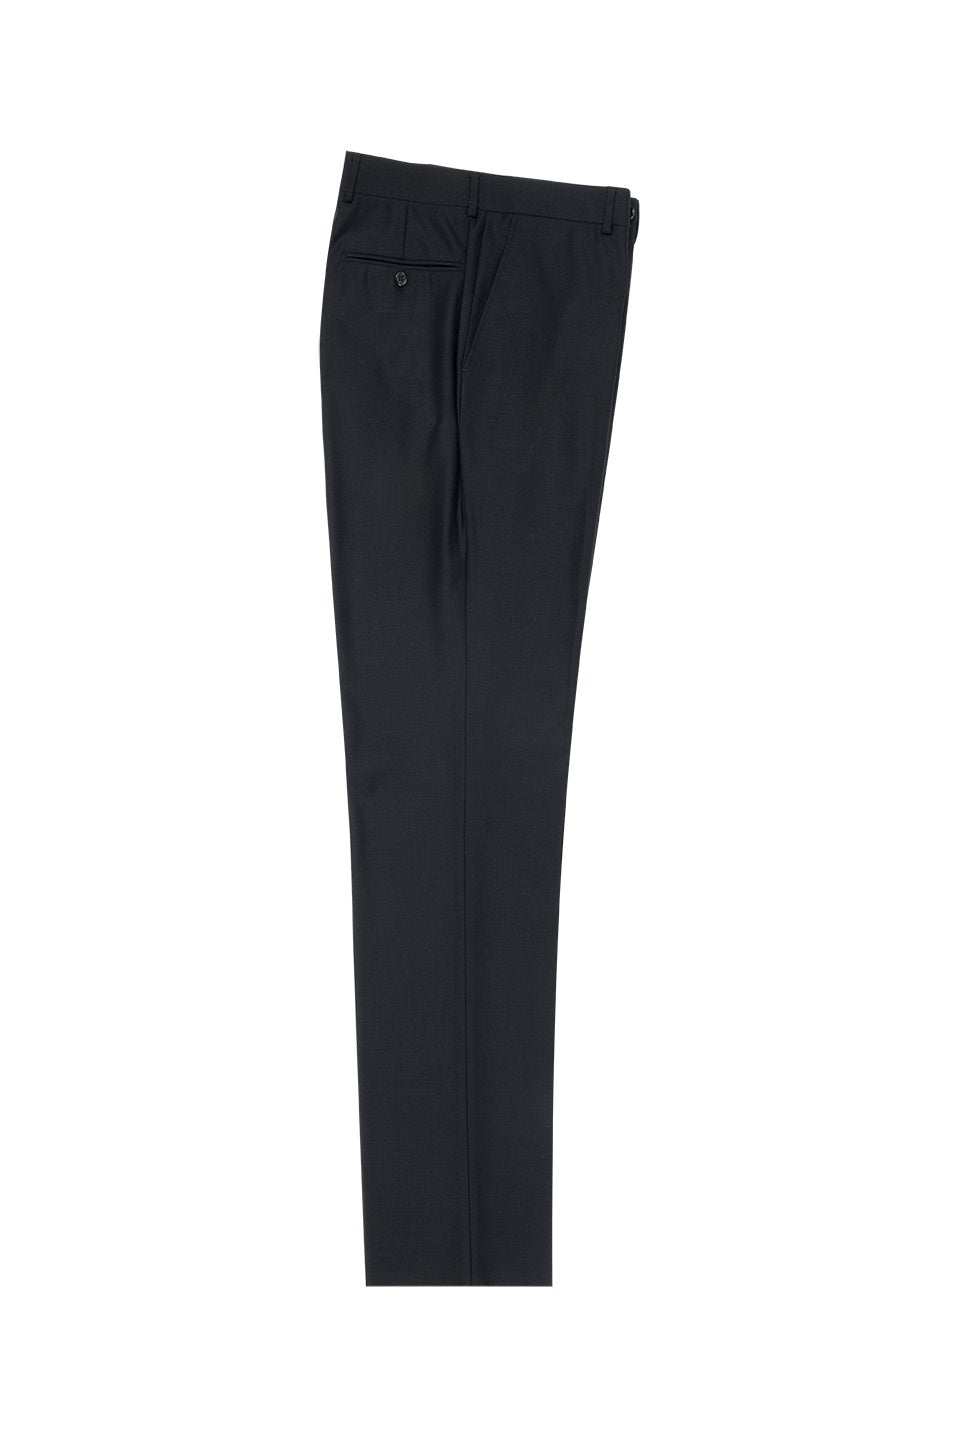 Tiglio Black Solid Flat Front Dress Pants